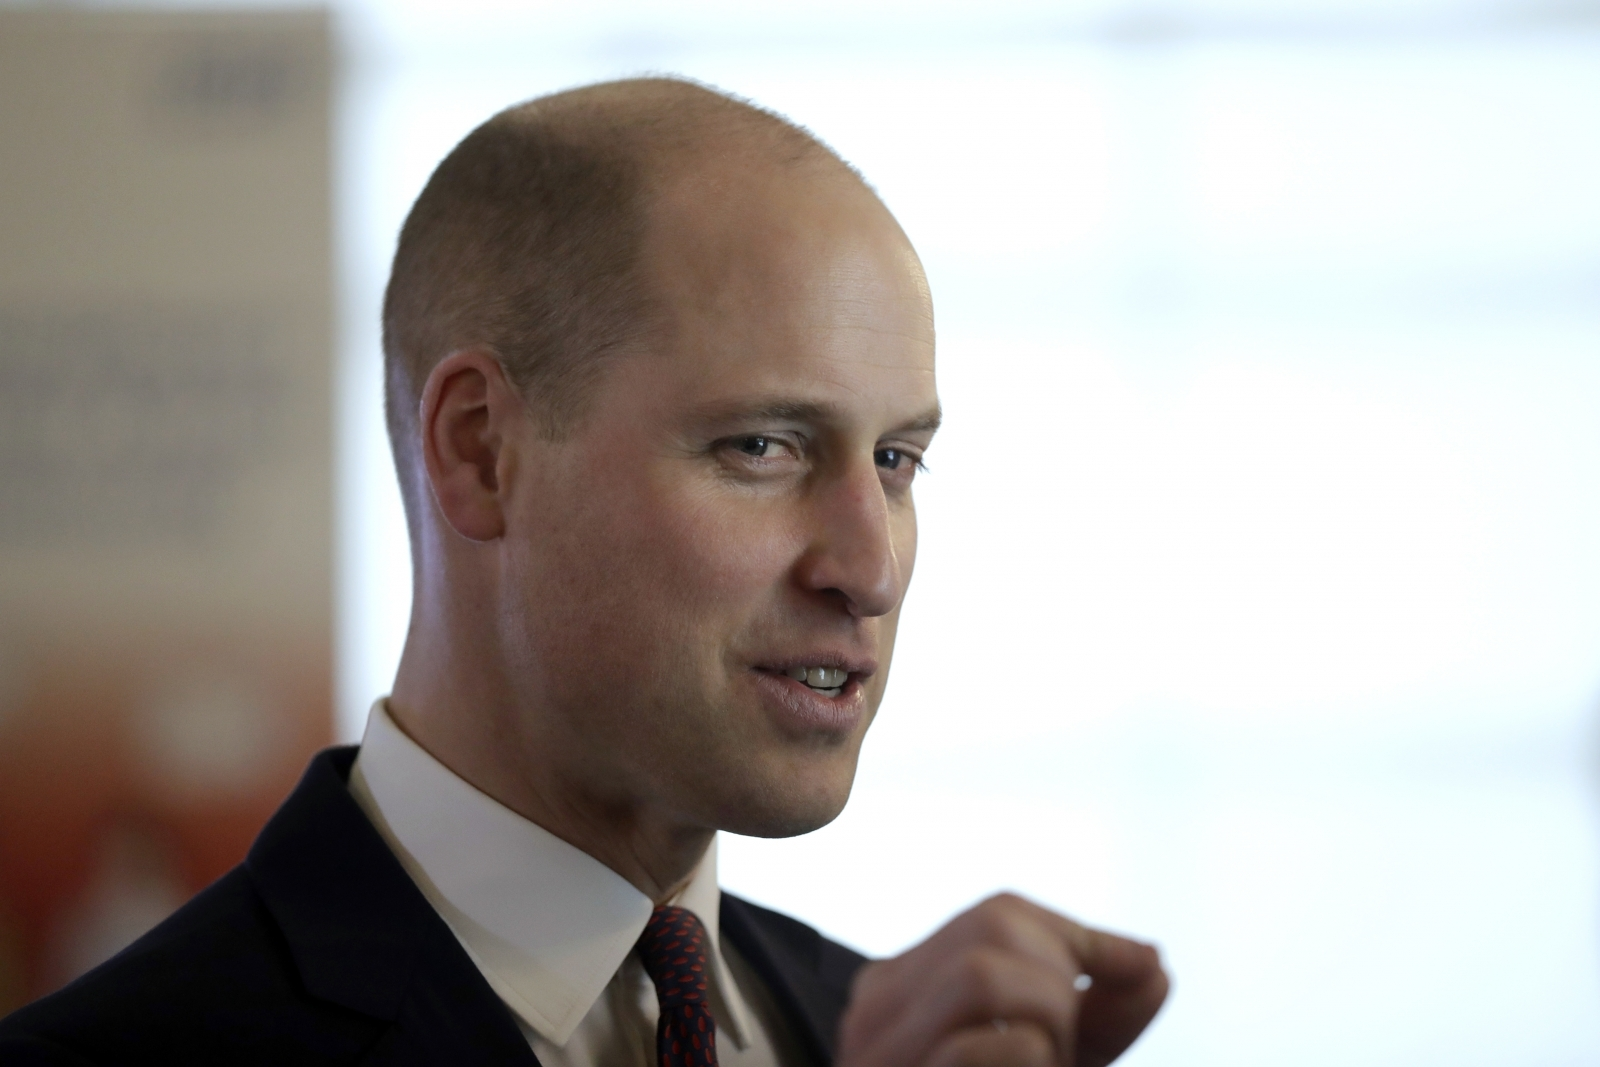 See Prince William S New Hairstyle And Find Out How Much